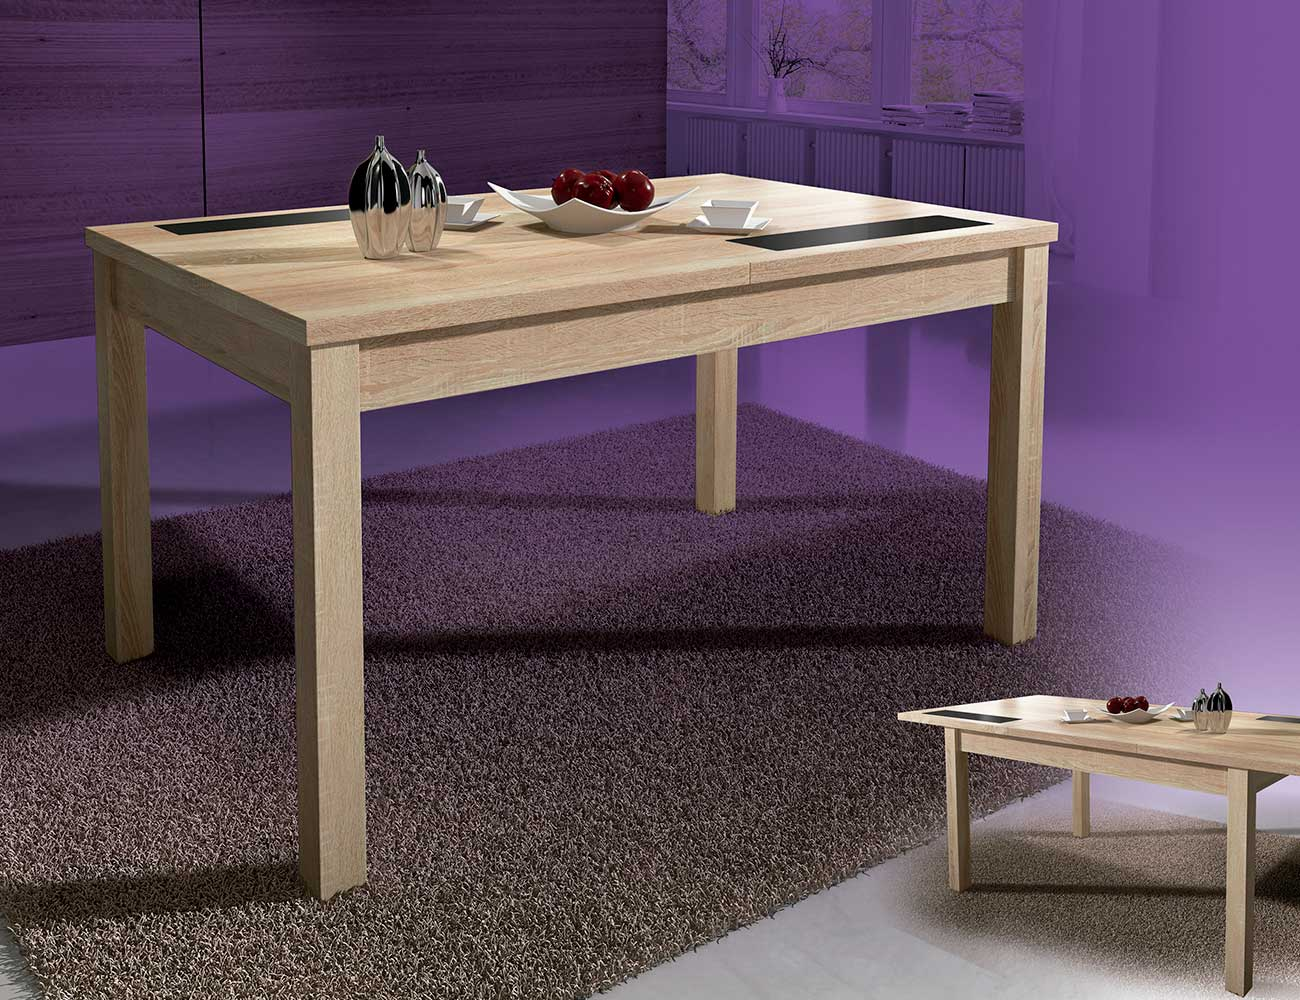 Mesa comedor extensible con cristables color cambrian for Caracteristicas de un comedor